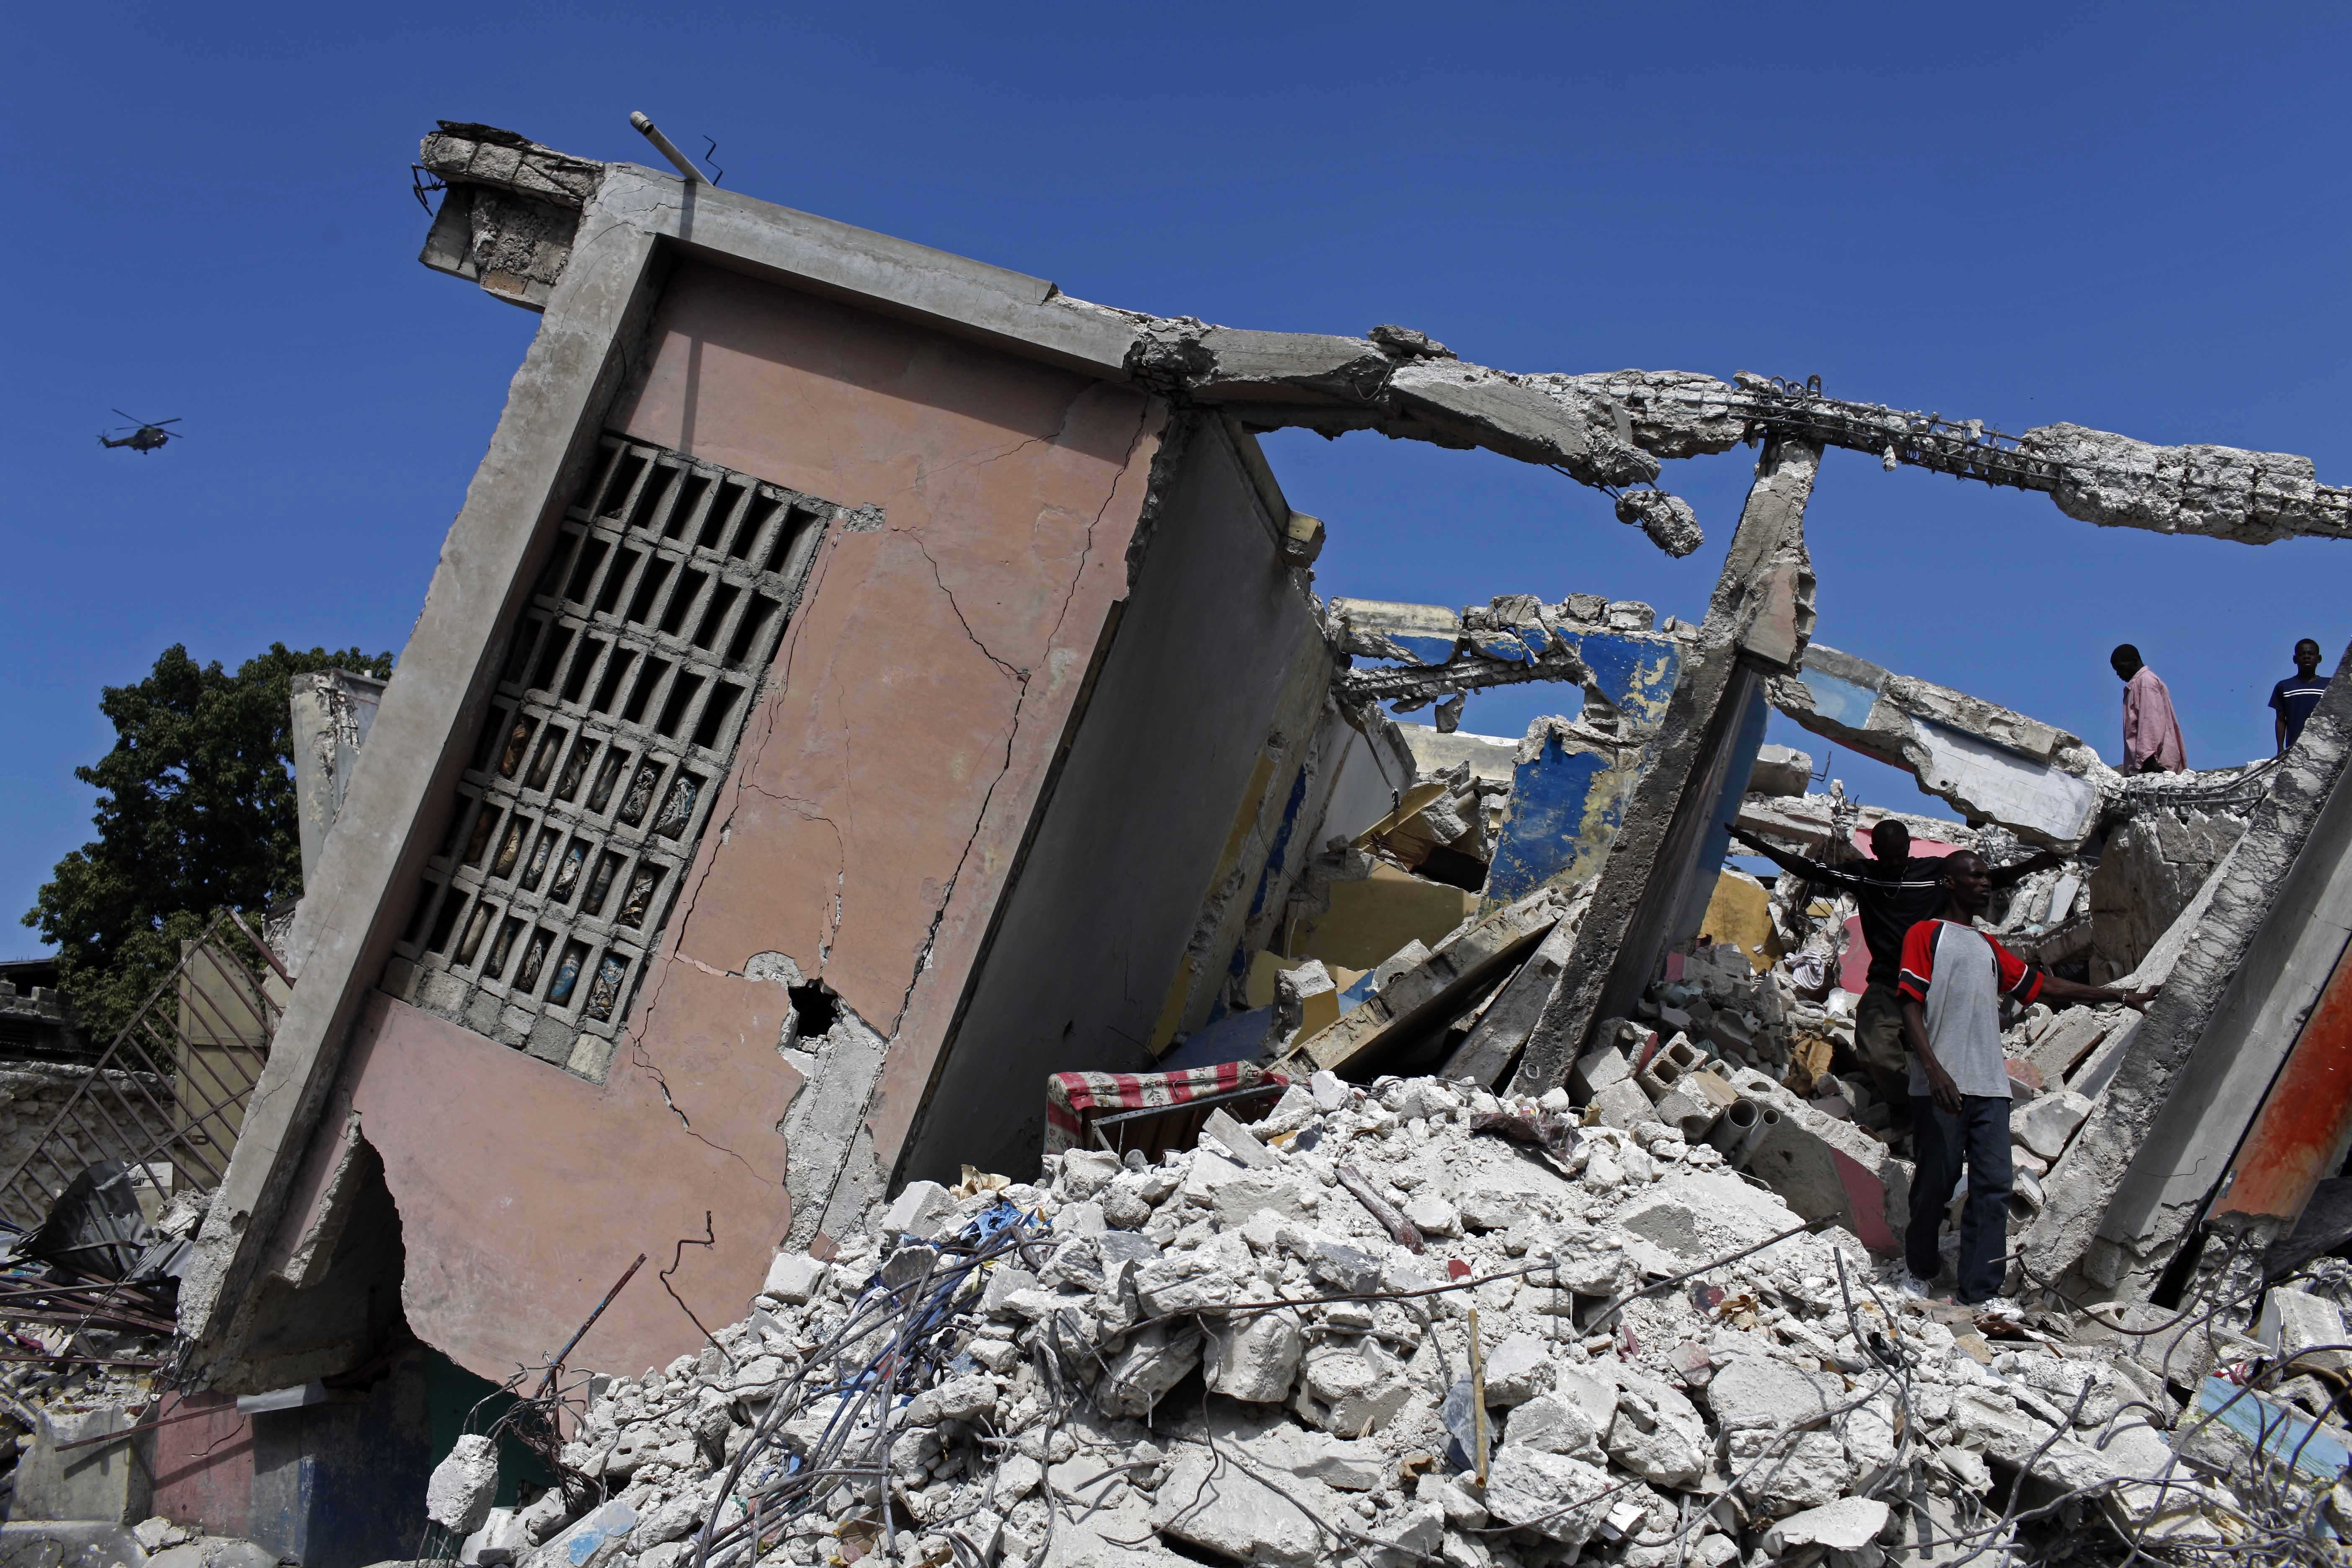 FILE - In this Jan. 30, 2010, file photo, people stand in the rubble of a collapsed building in the aftermath of a massive earthquake in Port-au-Prince. The Trump administration is hunting for evidence of crimes committed by Haitian immigrants as it decides whether to allow them to continue participating in a humanitarian program that has shielded tens of thousands from deportation since the 2010 earthquake. The Homeland Security Department has not made a final decision about Temporary Protected Status for Haiti and declined to comment on the pre-decisional process. The Obama administration included Haiti in the program shortly after the January 2010 earthquake that killed as many as 300,000 people and devastated schools, hospitals, homes and even entire neighborhoods (AP Photo/Rodrigo And, File)